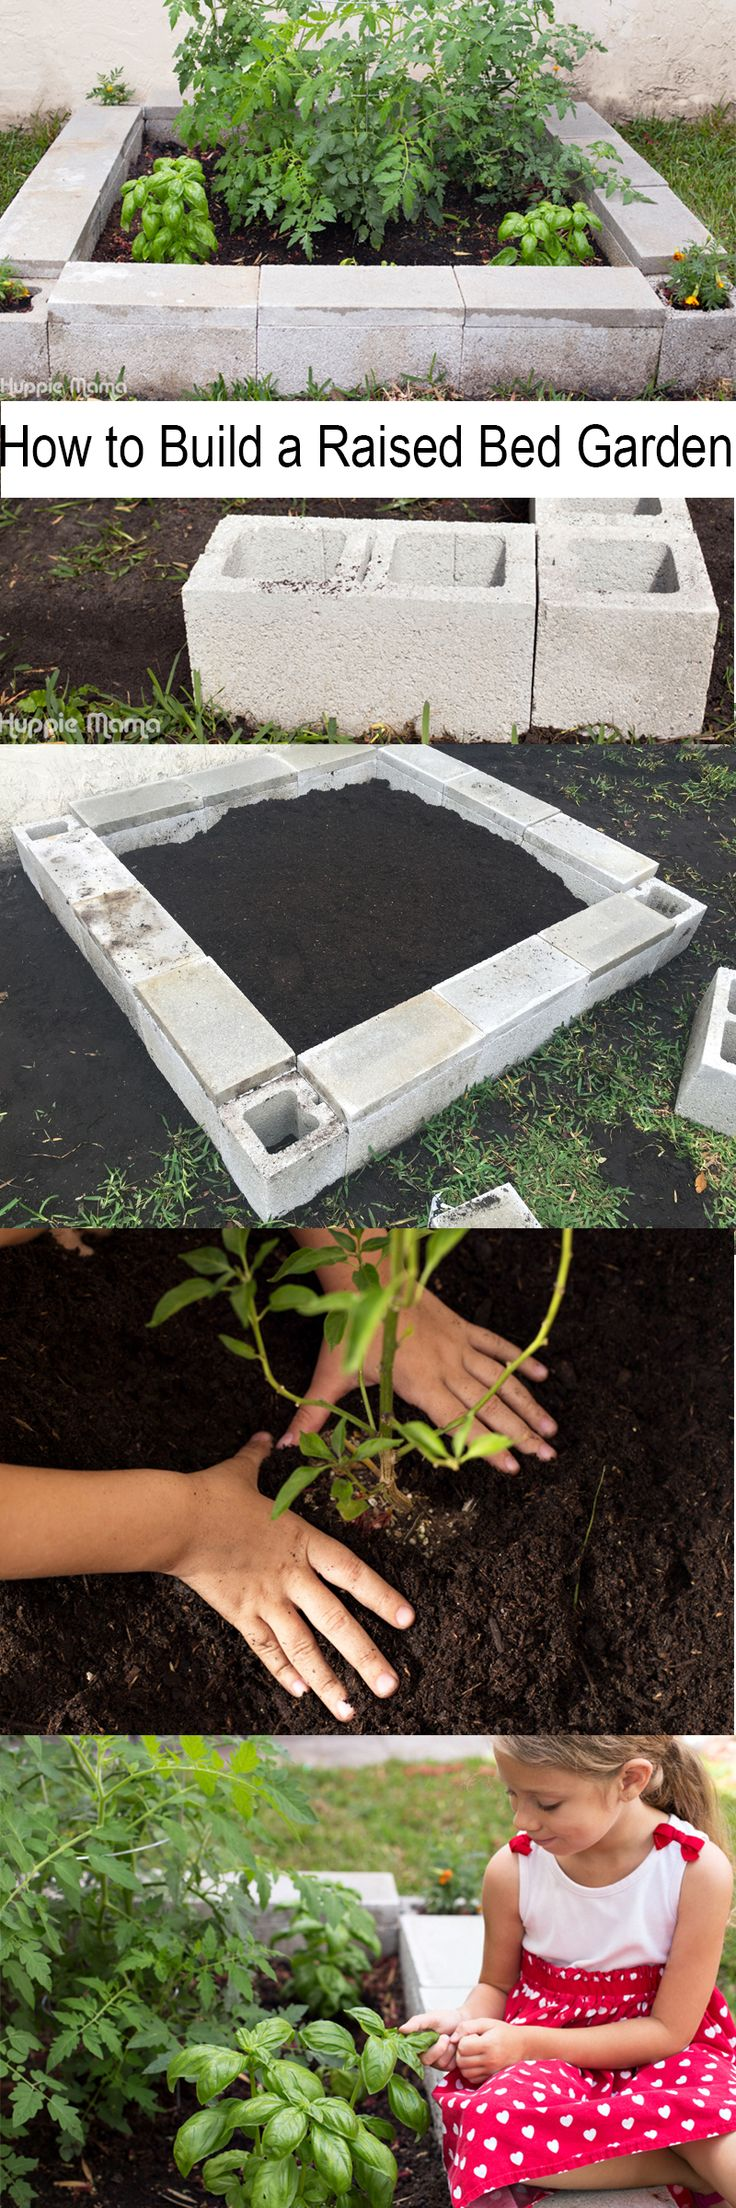 How to Build a Raised Bed Garden and get kids involved in the garden this year.